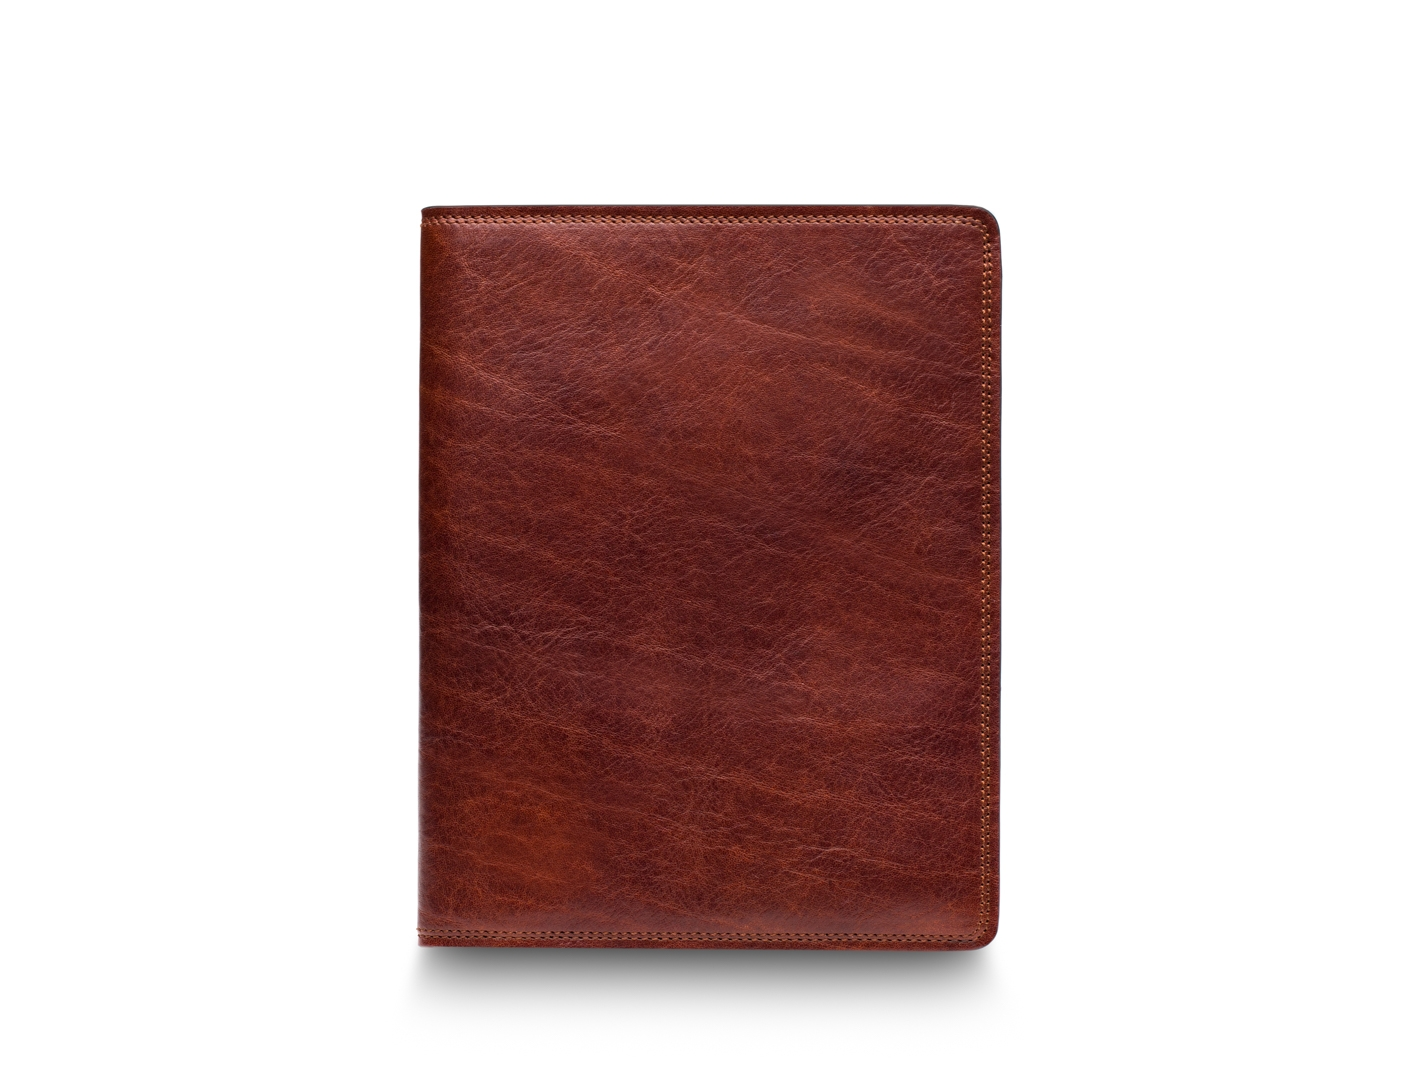 The Writer's Journal - Medium-218 Dark Brown - 218 Dark Brown